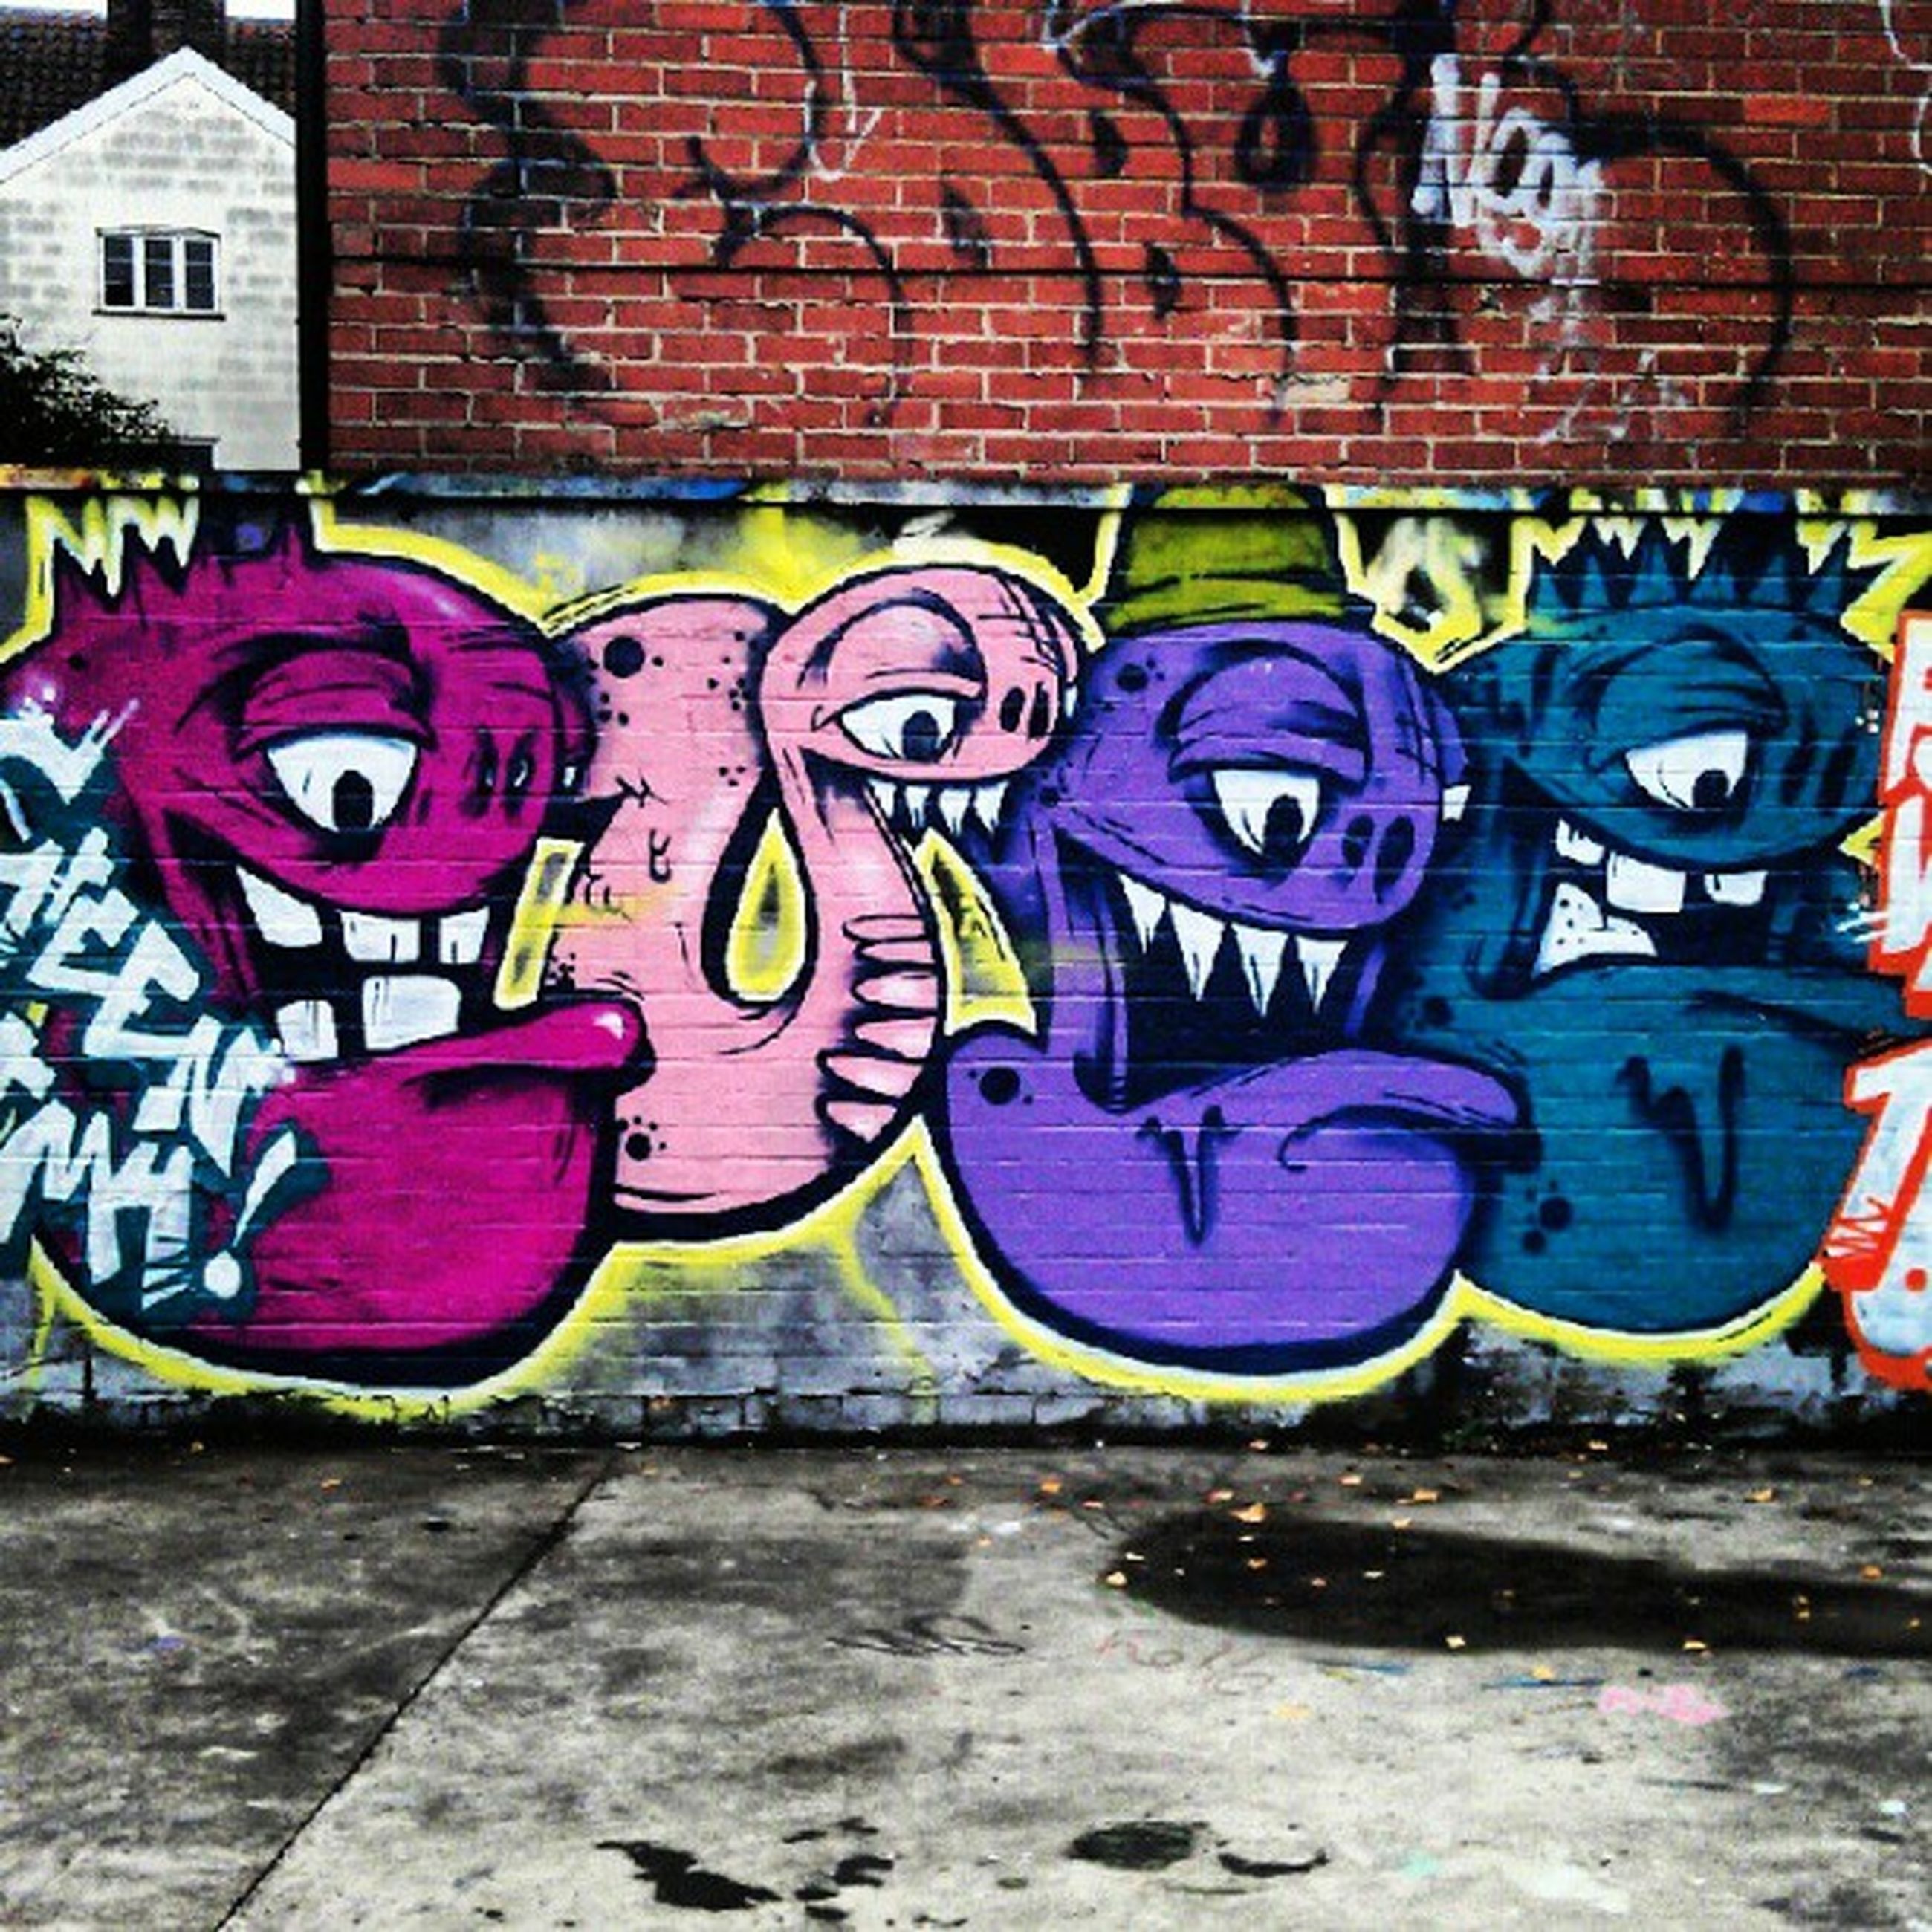 graffiti, multi colored, art and craft, art, creativity, built structure, architecture, building exterior, wall - building feature, street art, colorful, street, outdoors, mural, day, vandalism, human representation, no people, animal representation, wall